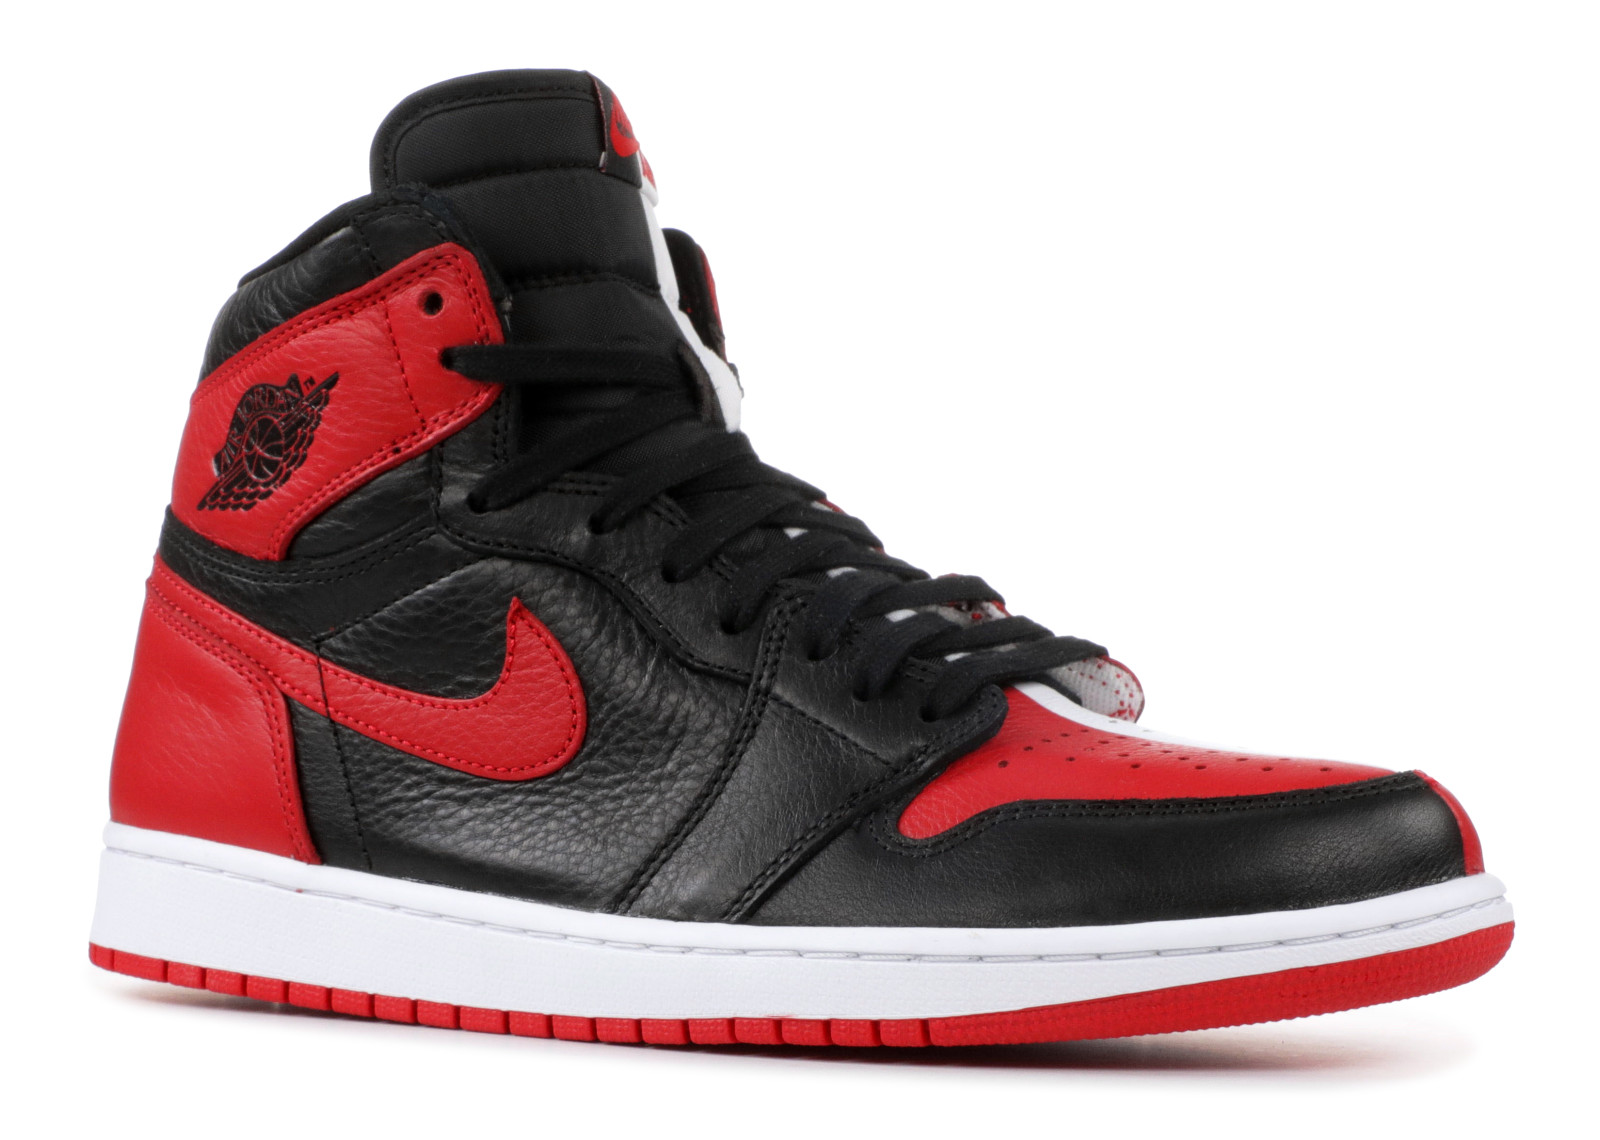 nike-air-jordan-1-homage-to-home-ar9880-023-release-20180421